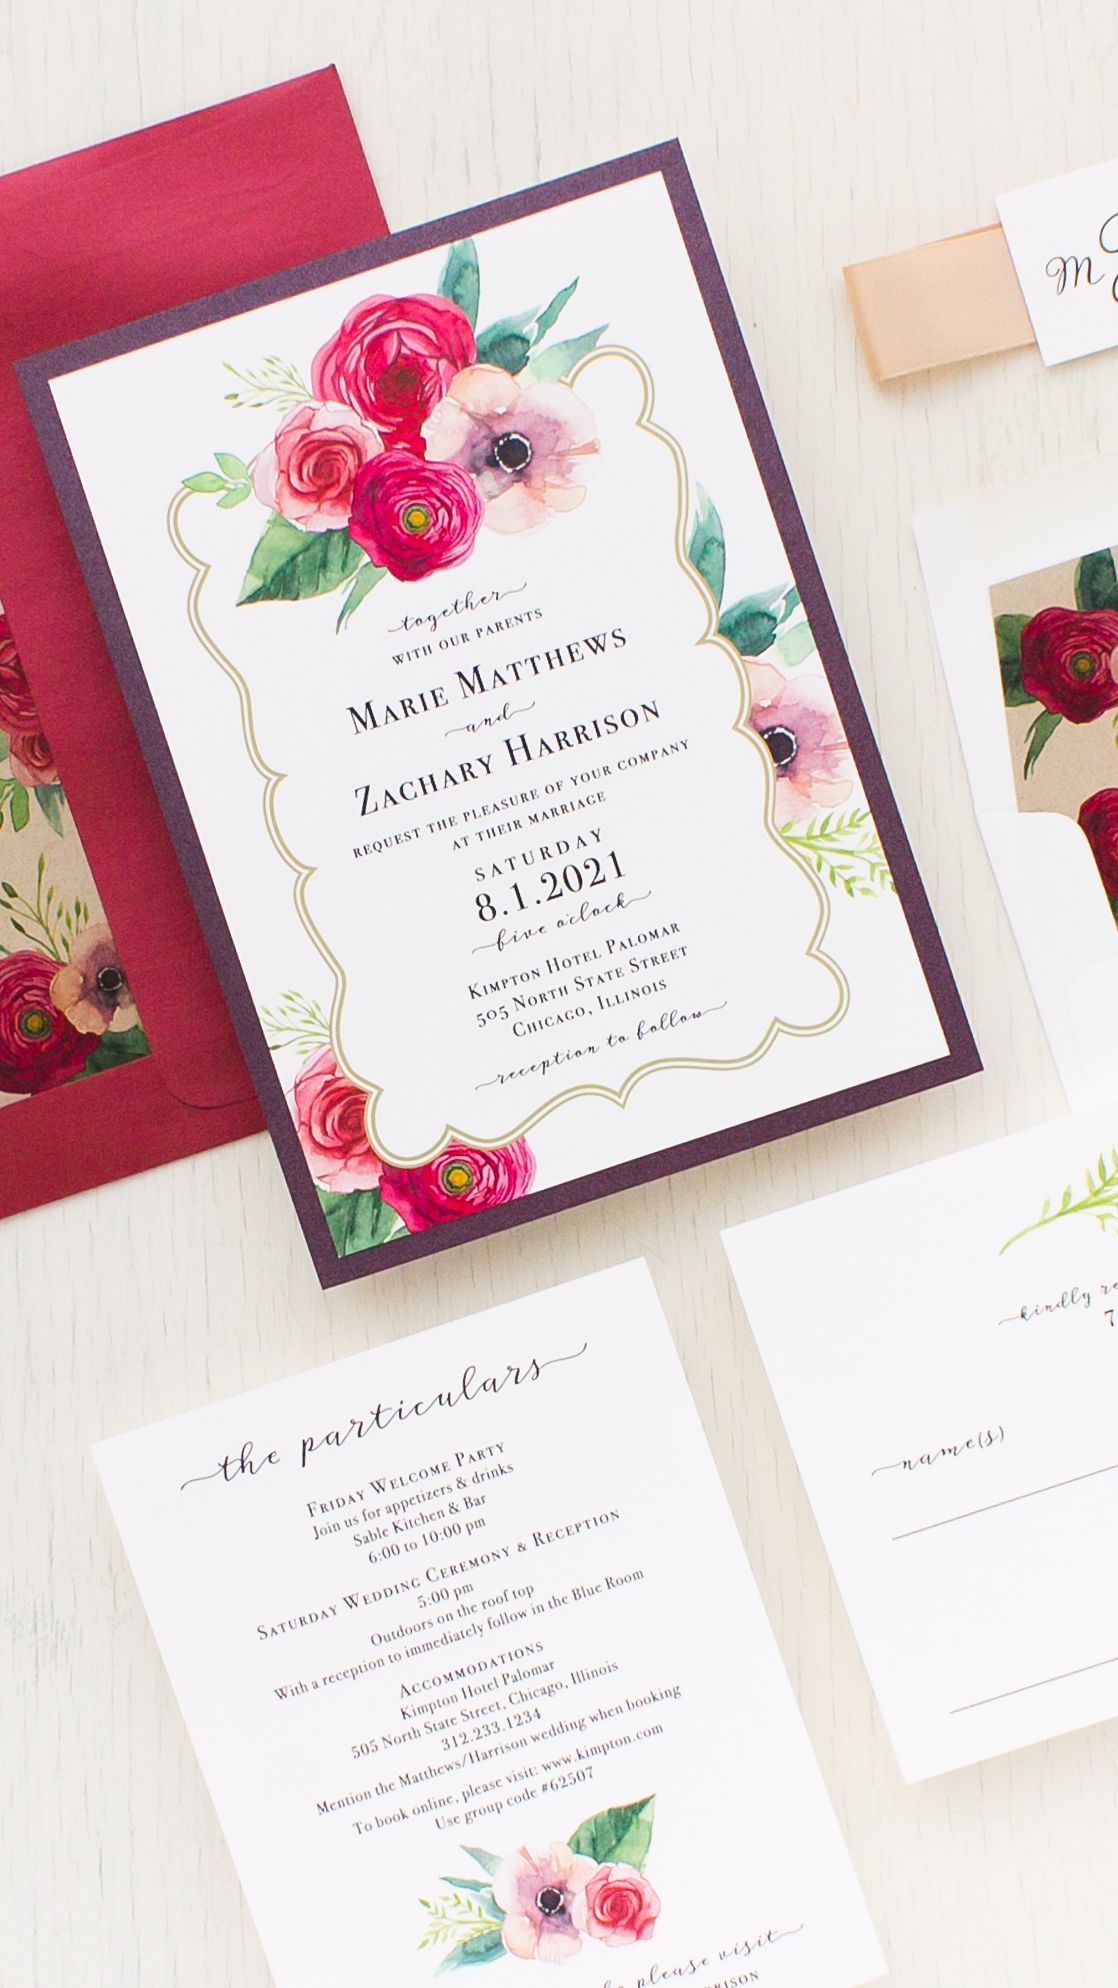 Deep Red Roses Wedding Invitations | Rose wedding, Floral wedding ...